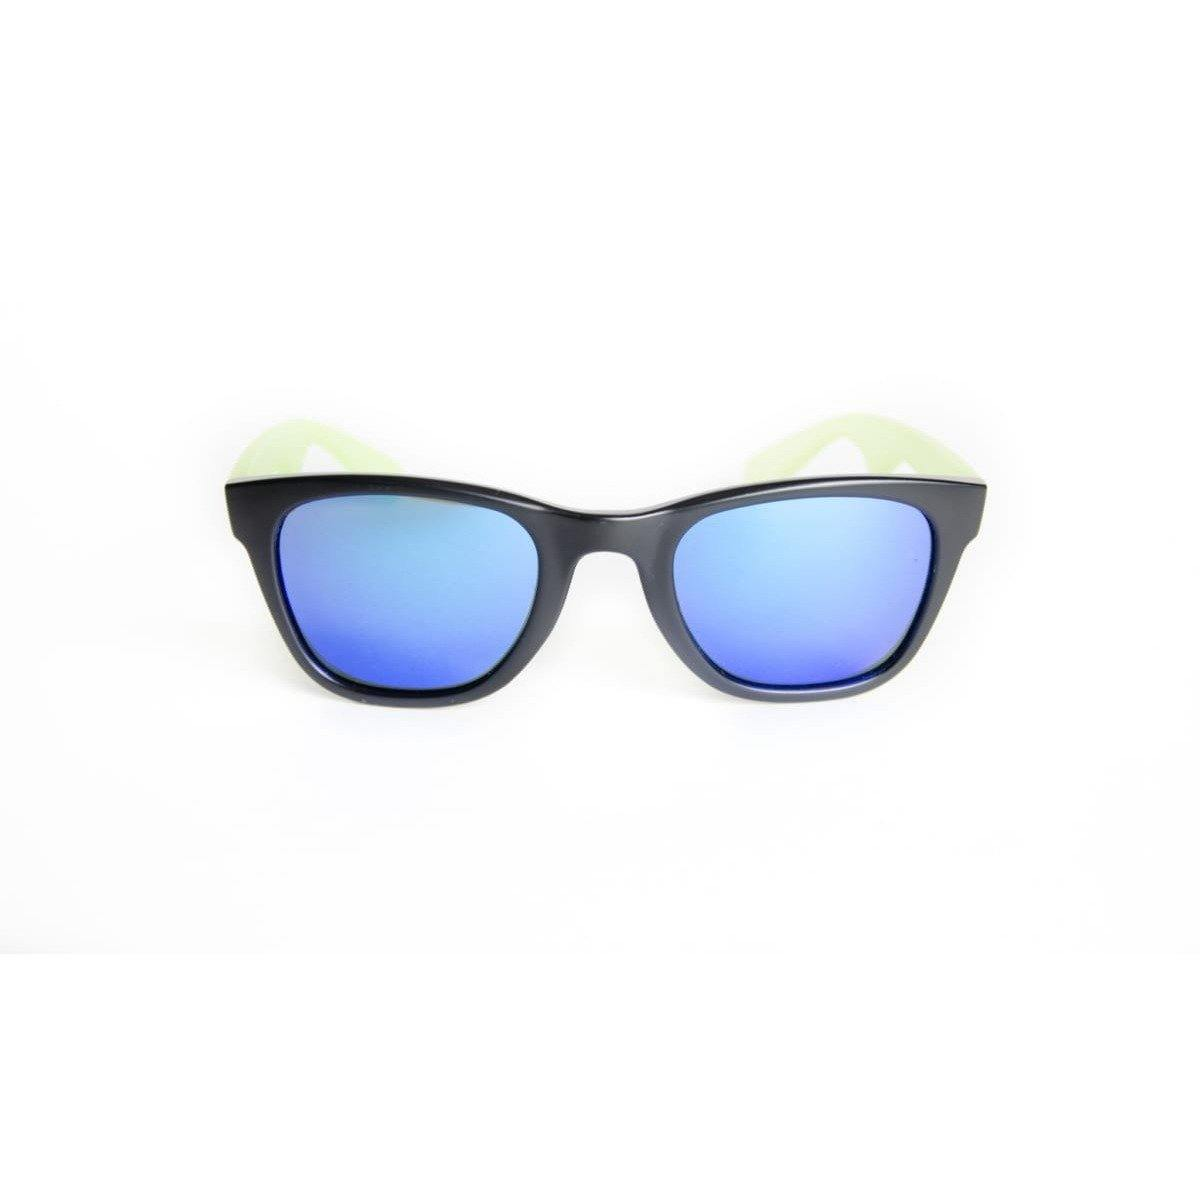 "Sports Sunglasses Designer Sunglasses Model ""Duck Sauce"" By: The Ever Collection"